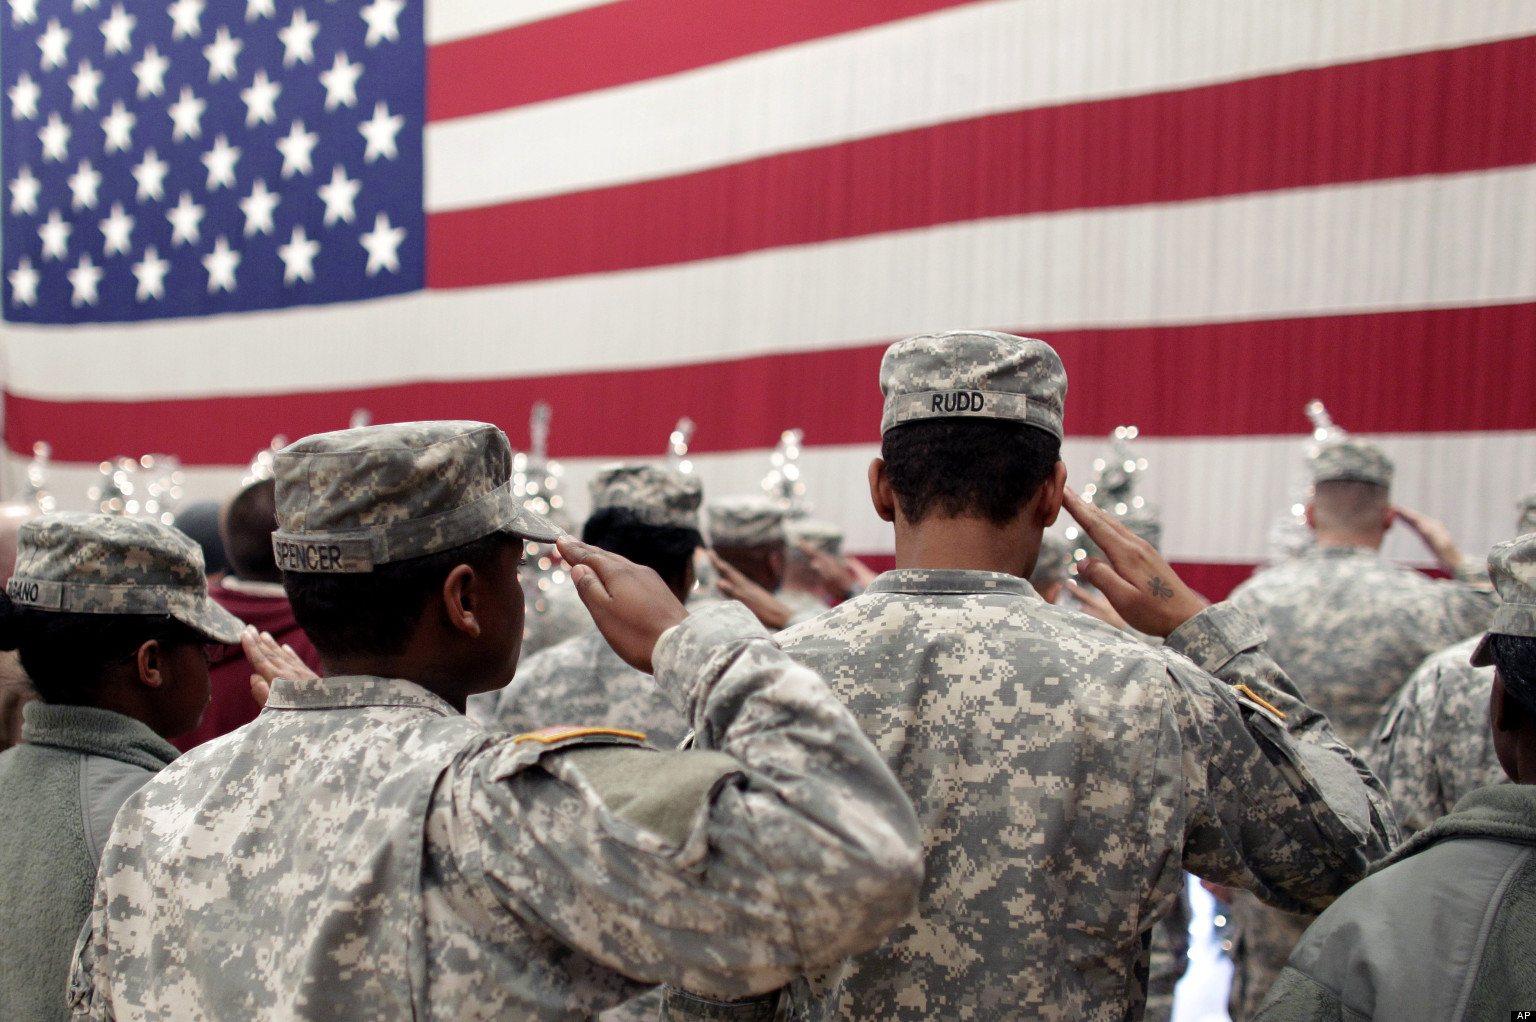 More Valuable Than My Thanks Though, Is The Waves Of Honor Military  Program. On This Very Special Day, I Hope That This Post Serves As A  Reminder For Those ...